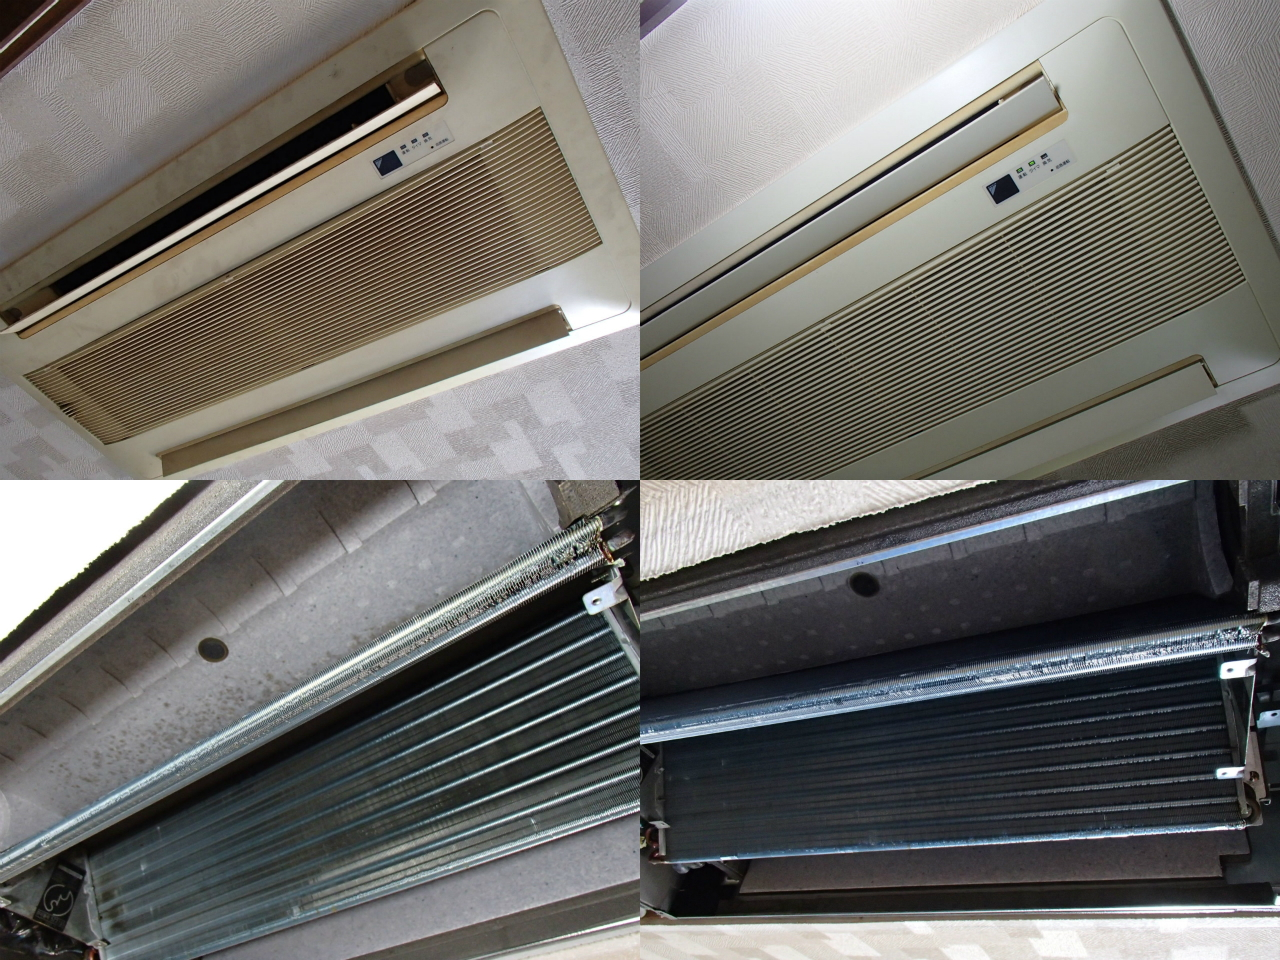 http://ajras.net/images/120907-aircon3.jpg